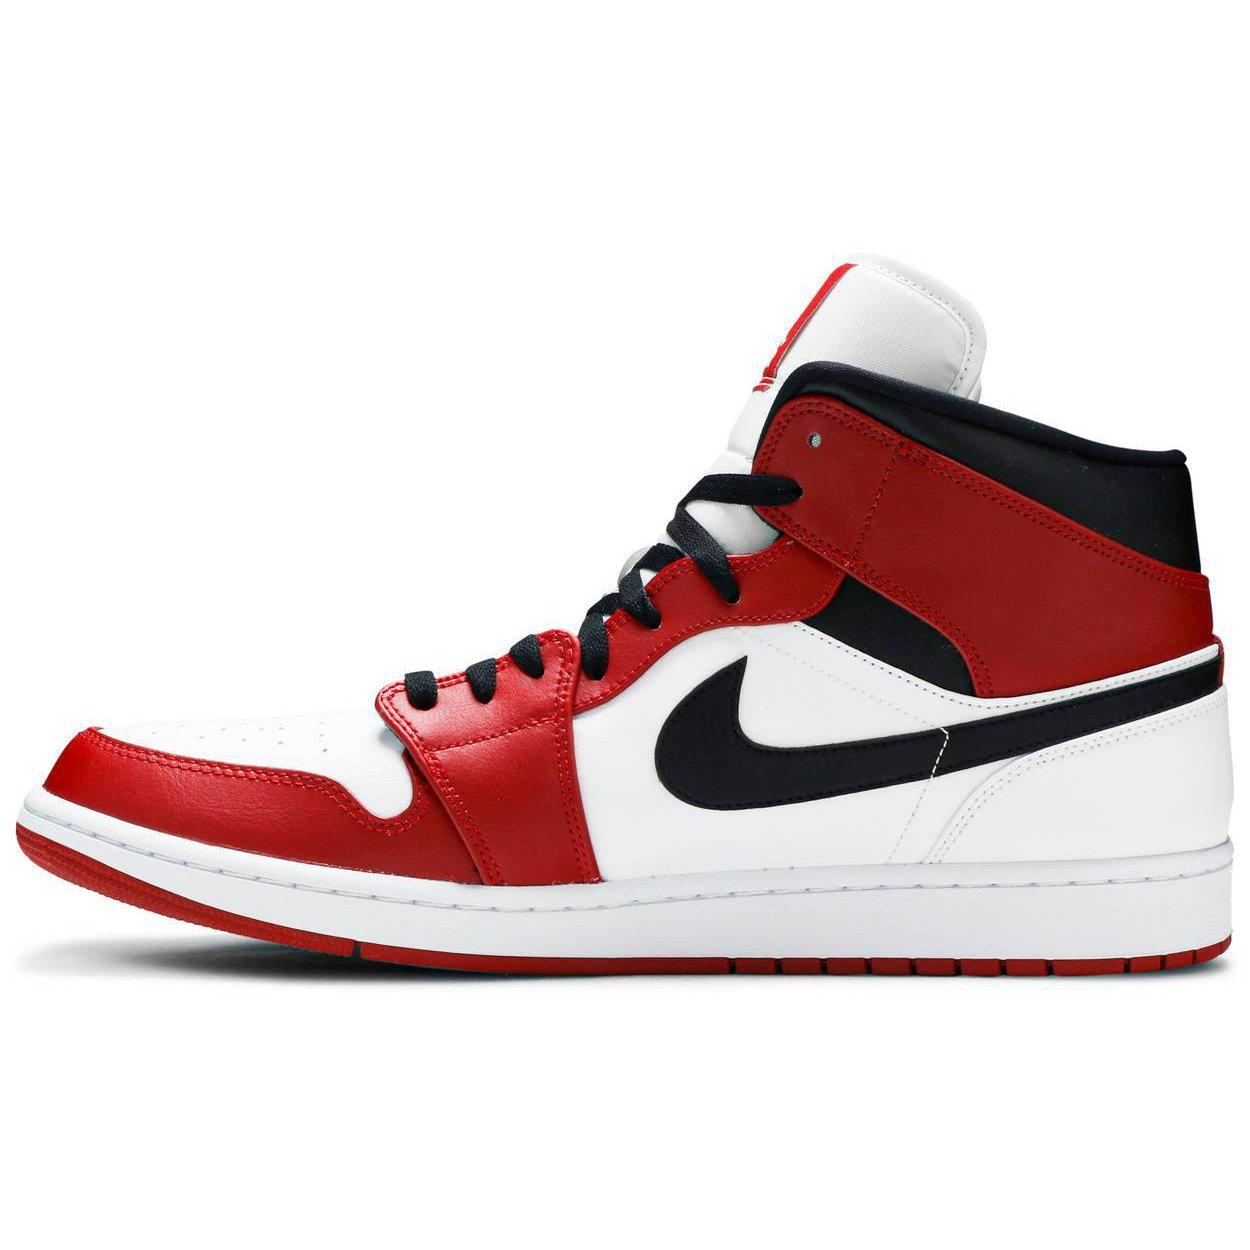 Nike Air Jordan 1 Mid 'Chicago White' Mens. | Waves Never Die | Nike | Sneakers